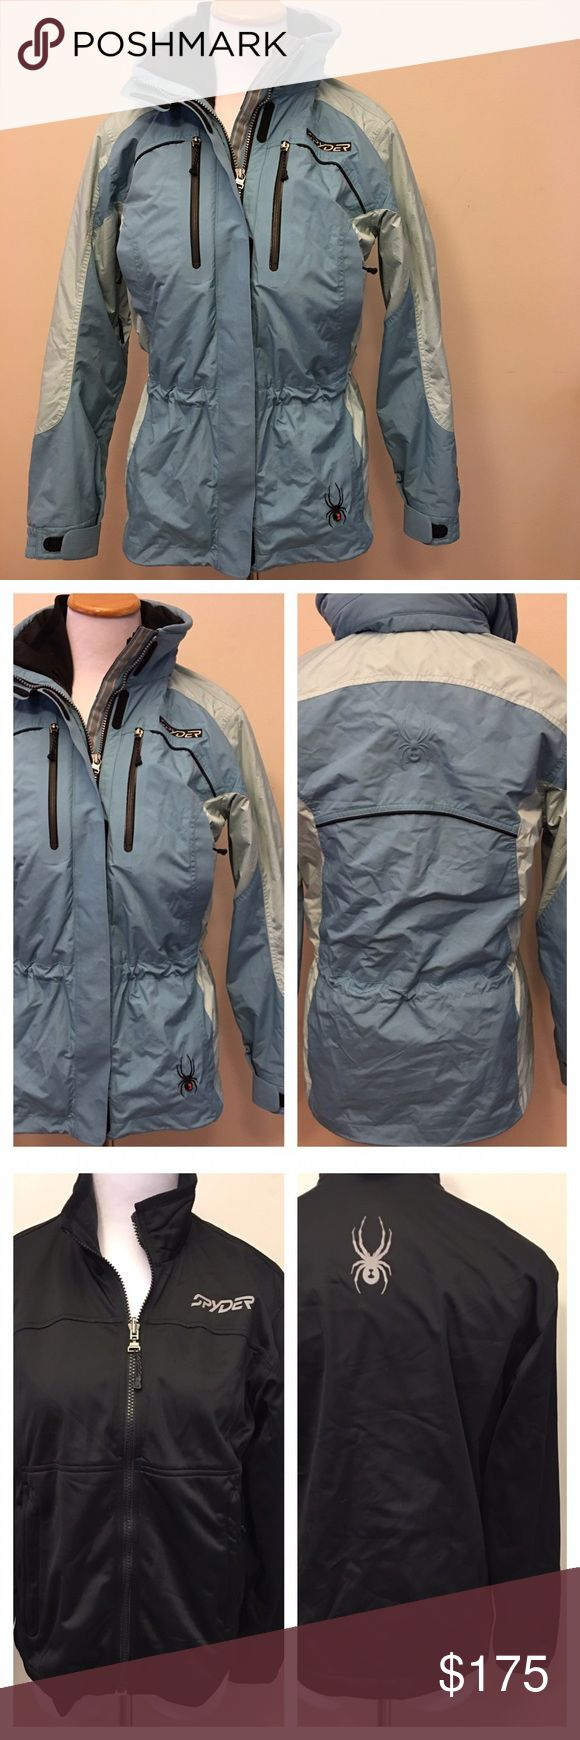 Spyder Blue & Black Ski Parka Coat & Shell System Pockets everywhere. Inner removable jacket is black and outer jacket is mostly blue. Machine washable on delicate. Axys Line. Hood is removable or can be tucked away and kept on the jacket. Please feel free to ask any other questions you may have! Spyder Jackets & Coats